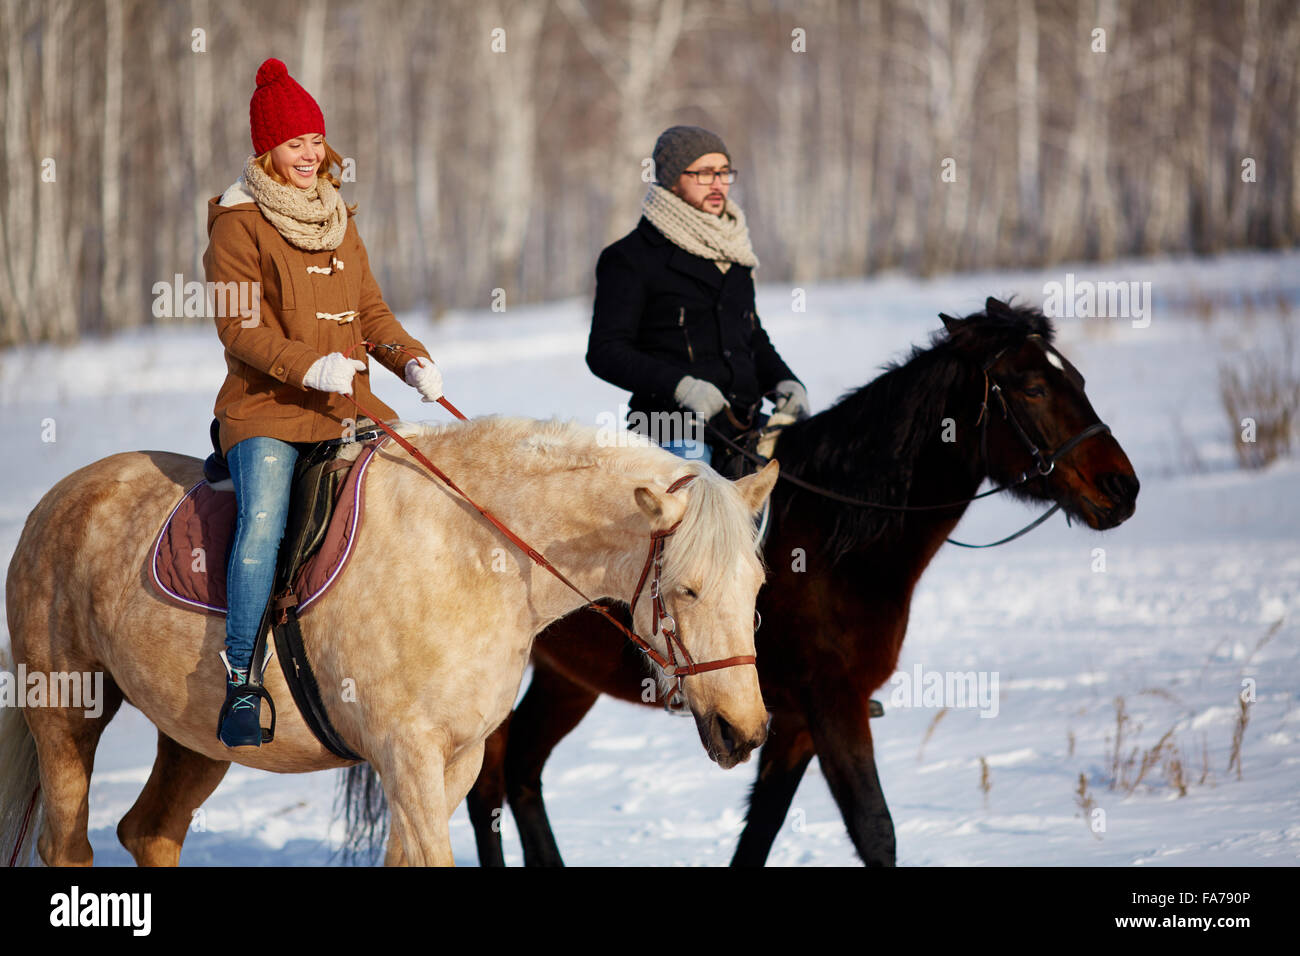 Couple Enjoying Horse Riding In Winter Day Stock Photo Alamy